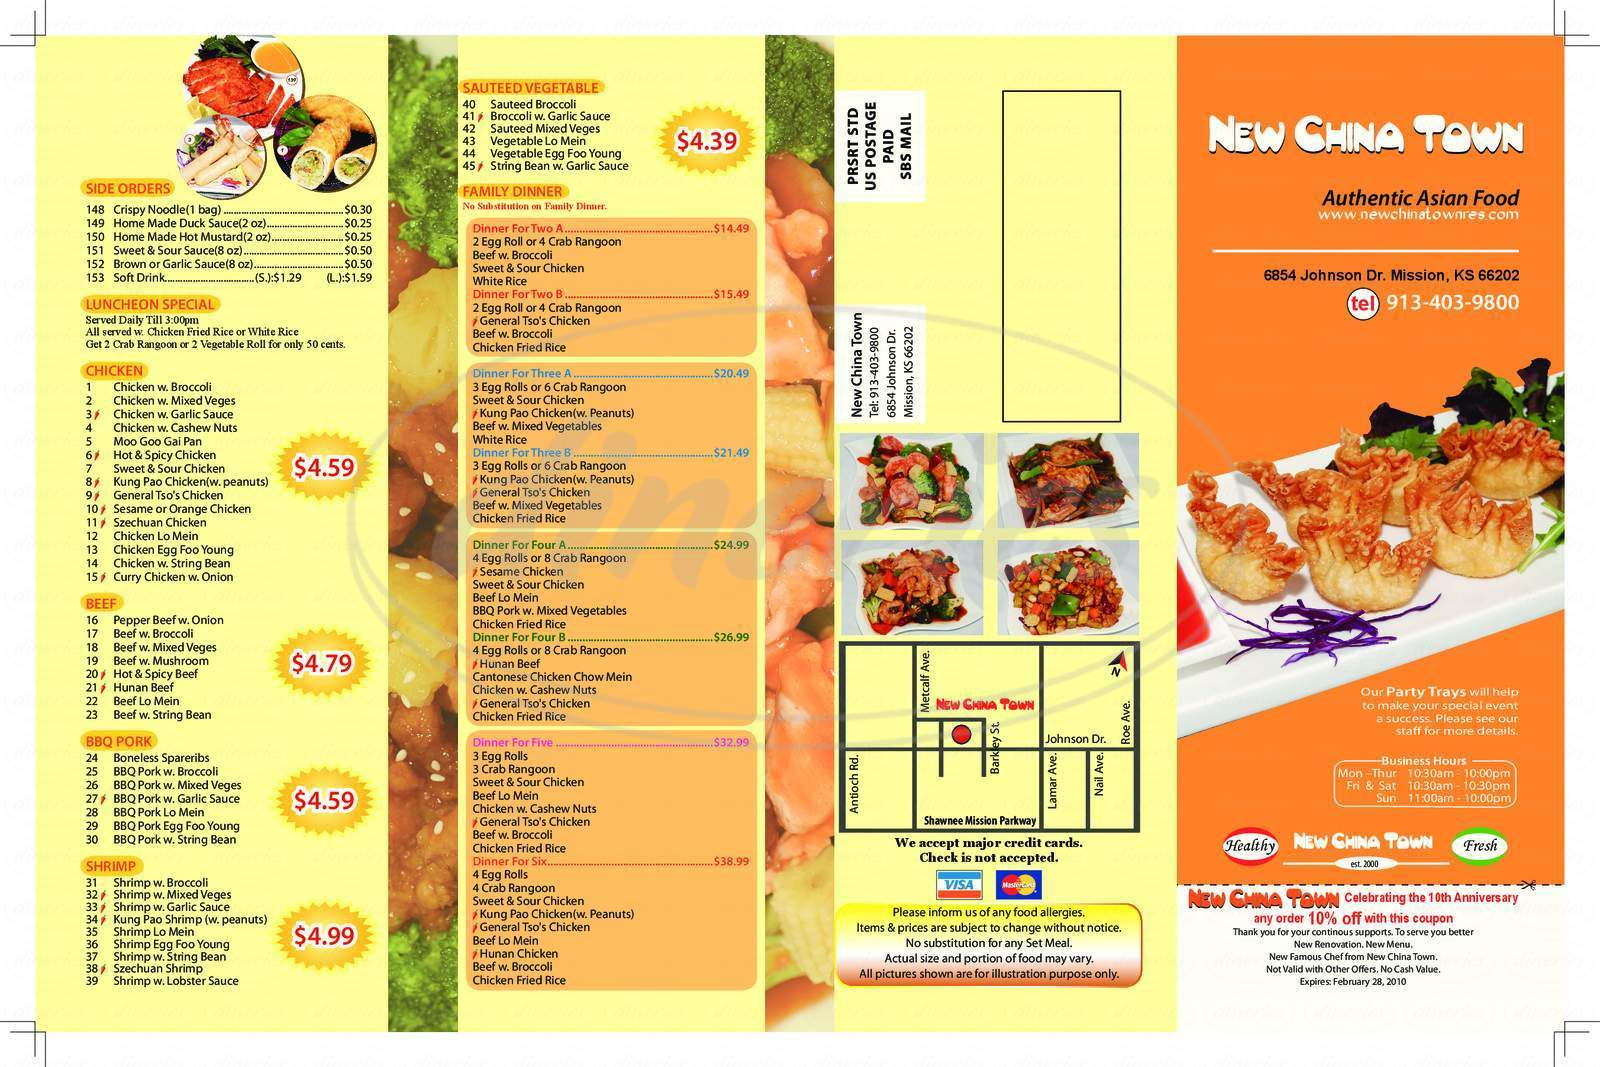 menu for New Chinatown